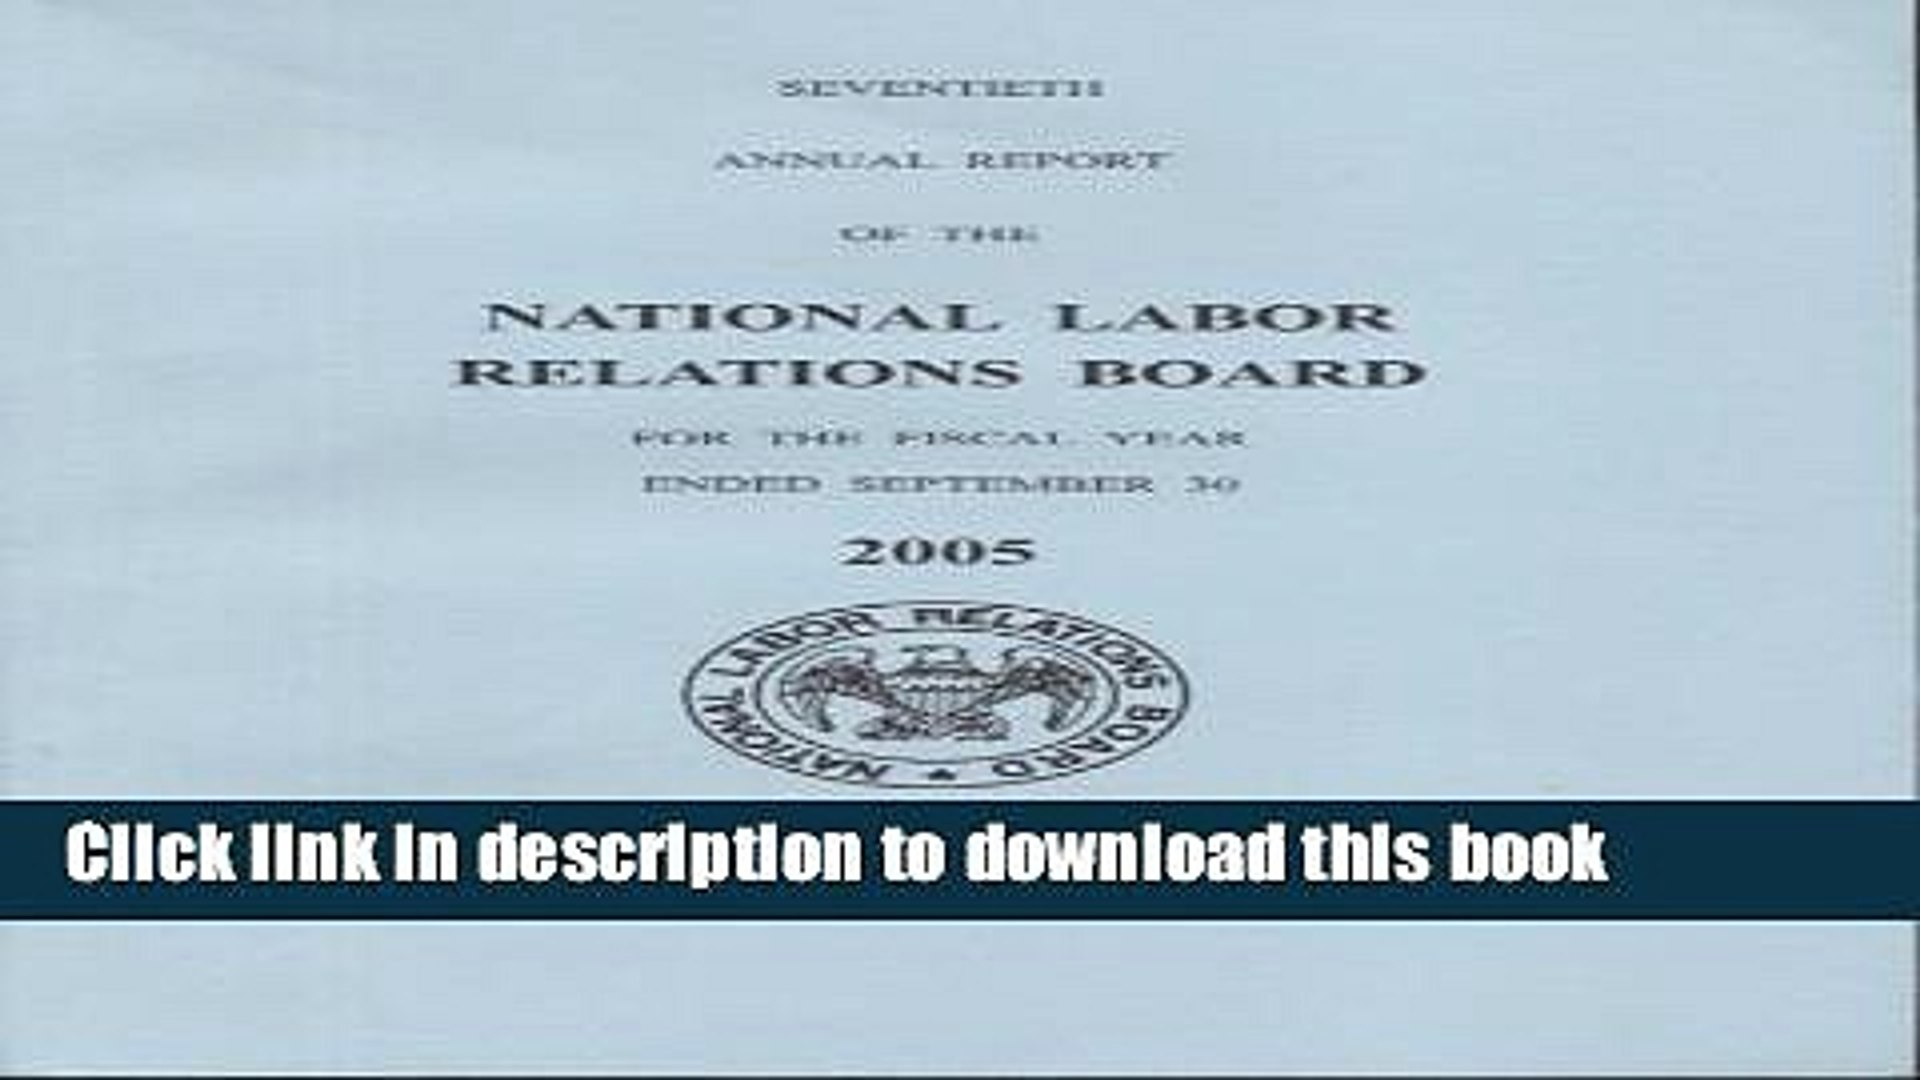 Ebook Reports of the United States Tax Court, Volume 125, July 1, 2005, to December 31, 2005 Full